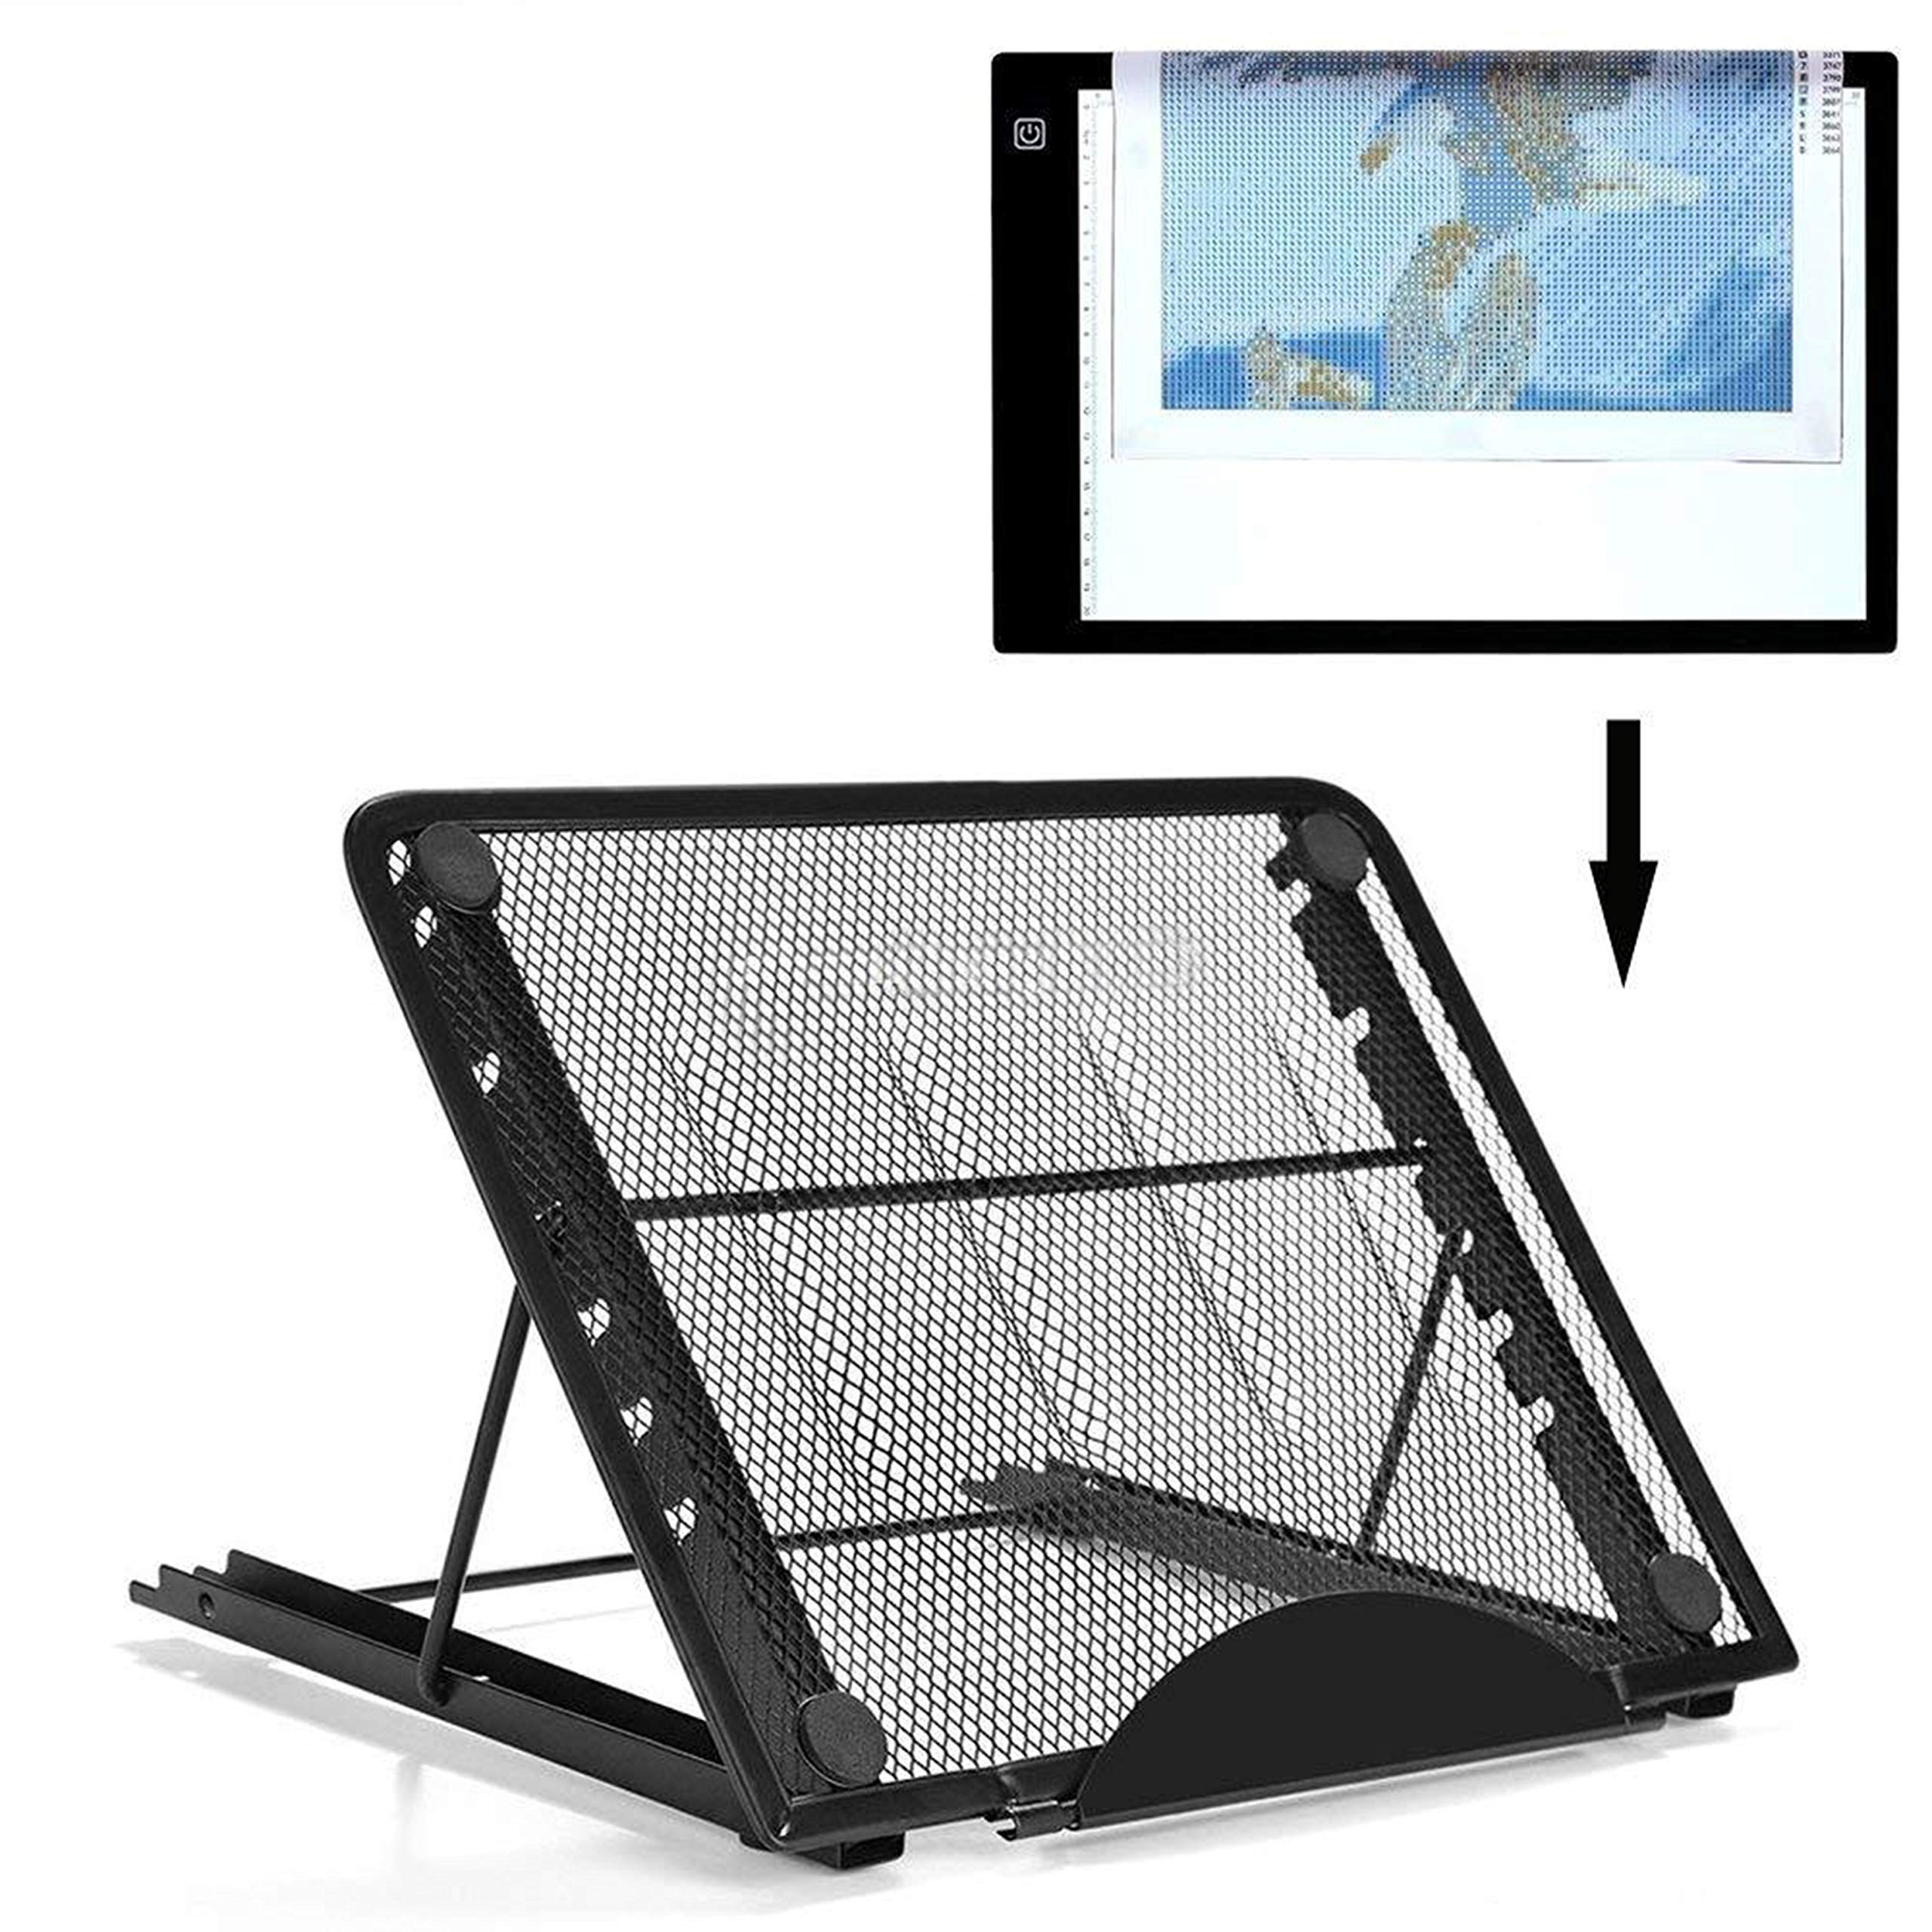 Ventilated Adjustable Light Box Laptop Pad Stand,Multifunction (6 Angle Points) Skidding Prevented Tracing Holder for Tikteck A4 LED Tracing Light Board by tiktecklab